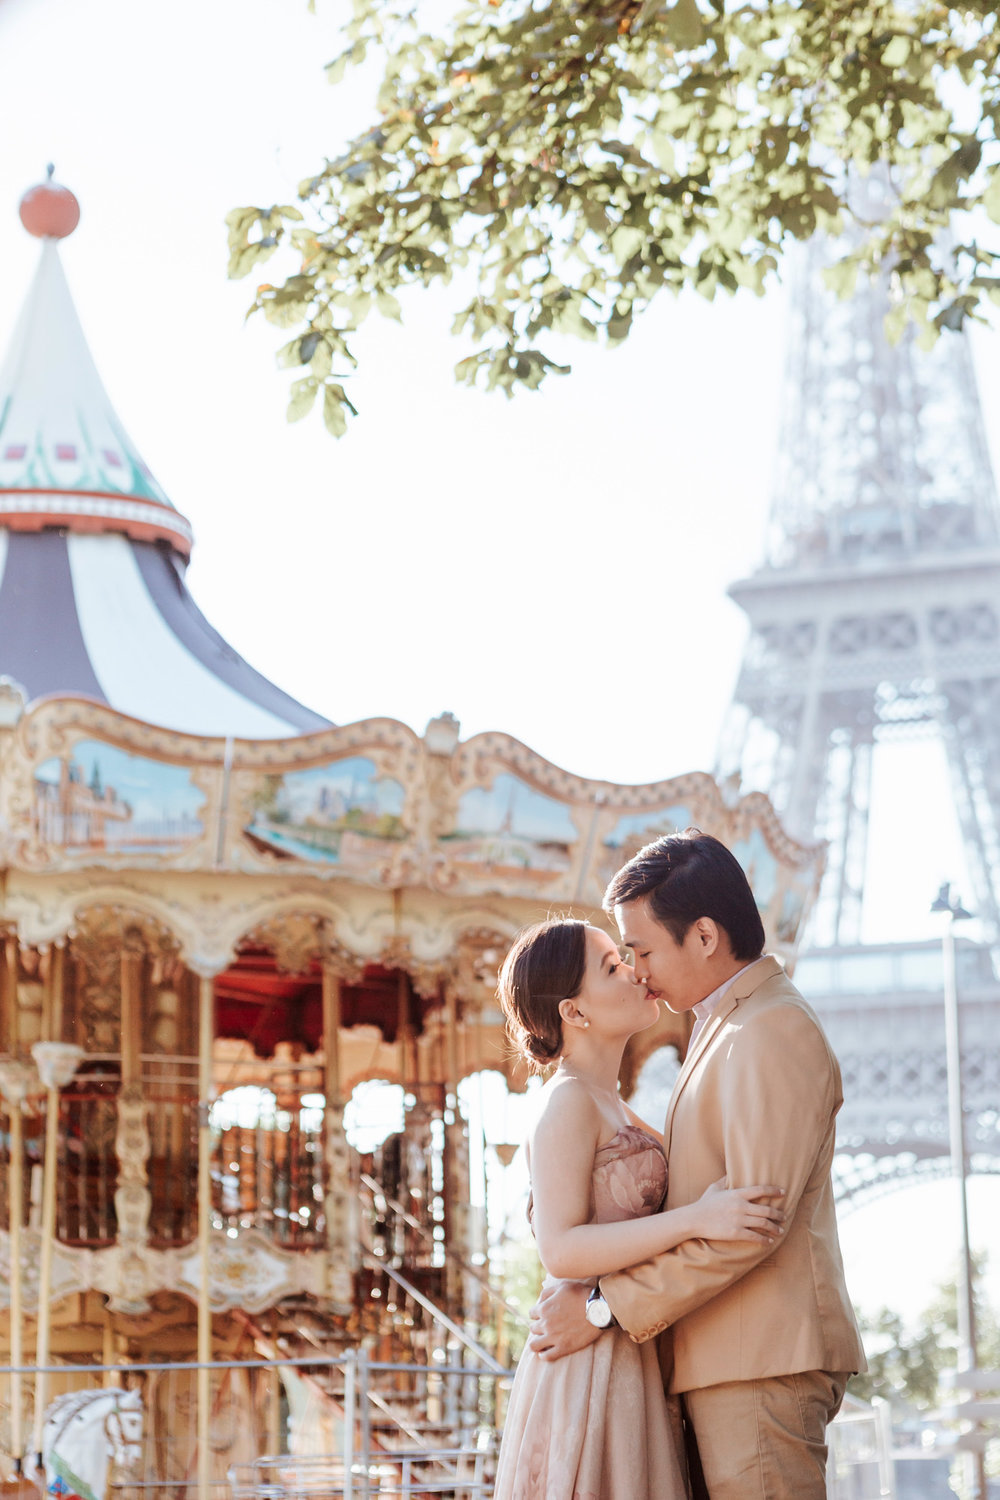 Pre-wedding couple portrait session kissing by the carousel at the Eiffel Tower in sunrise captured by Photographer in Paris Federico Guendel